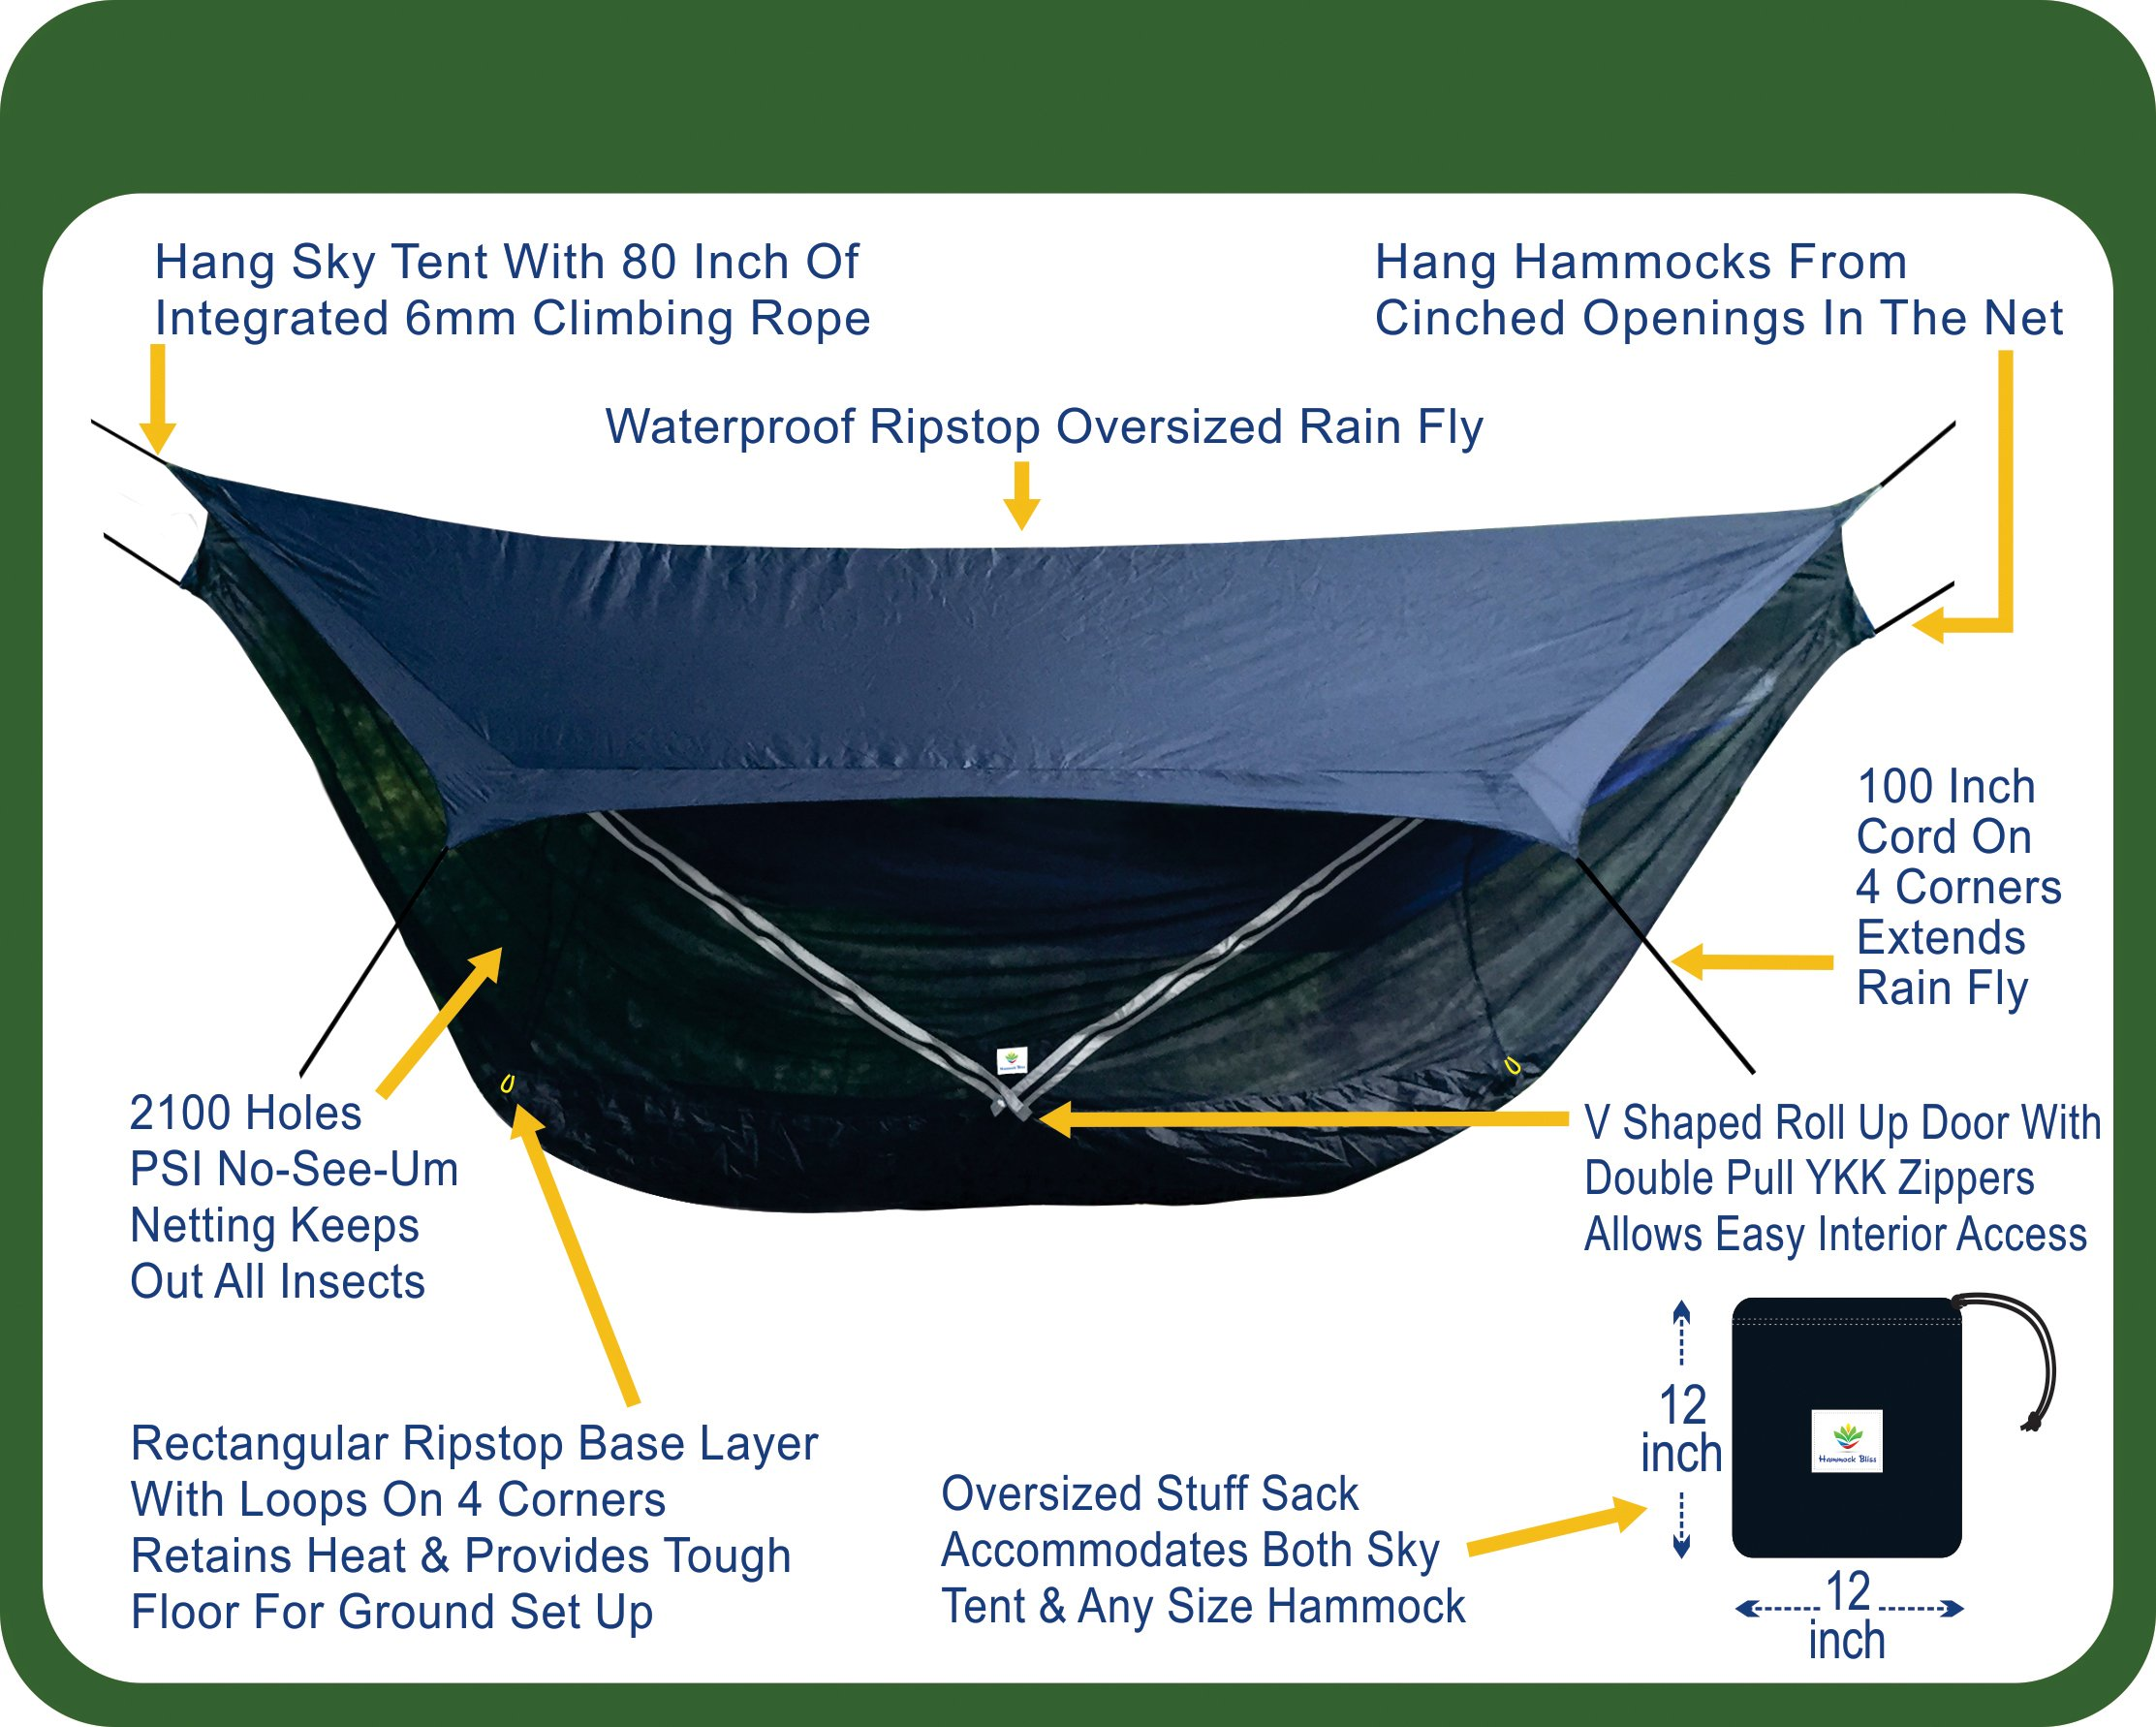 Hammock Bliss Sky Tent 2 - A Revolutionary 2 Person Hammock Tent - Waterproof and Bug Proof Hanging Tent Provides Spacious and Cozy Shelter For 2 Camping Hammocks - Embrace Hammock Camping Comfort by Hammock Bliss (Image #2)